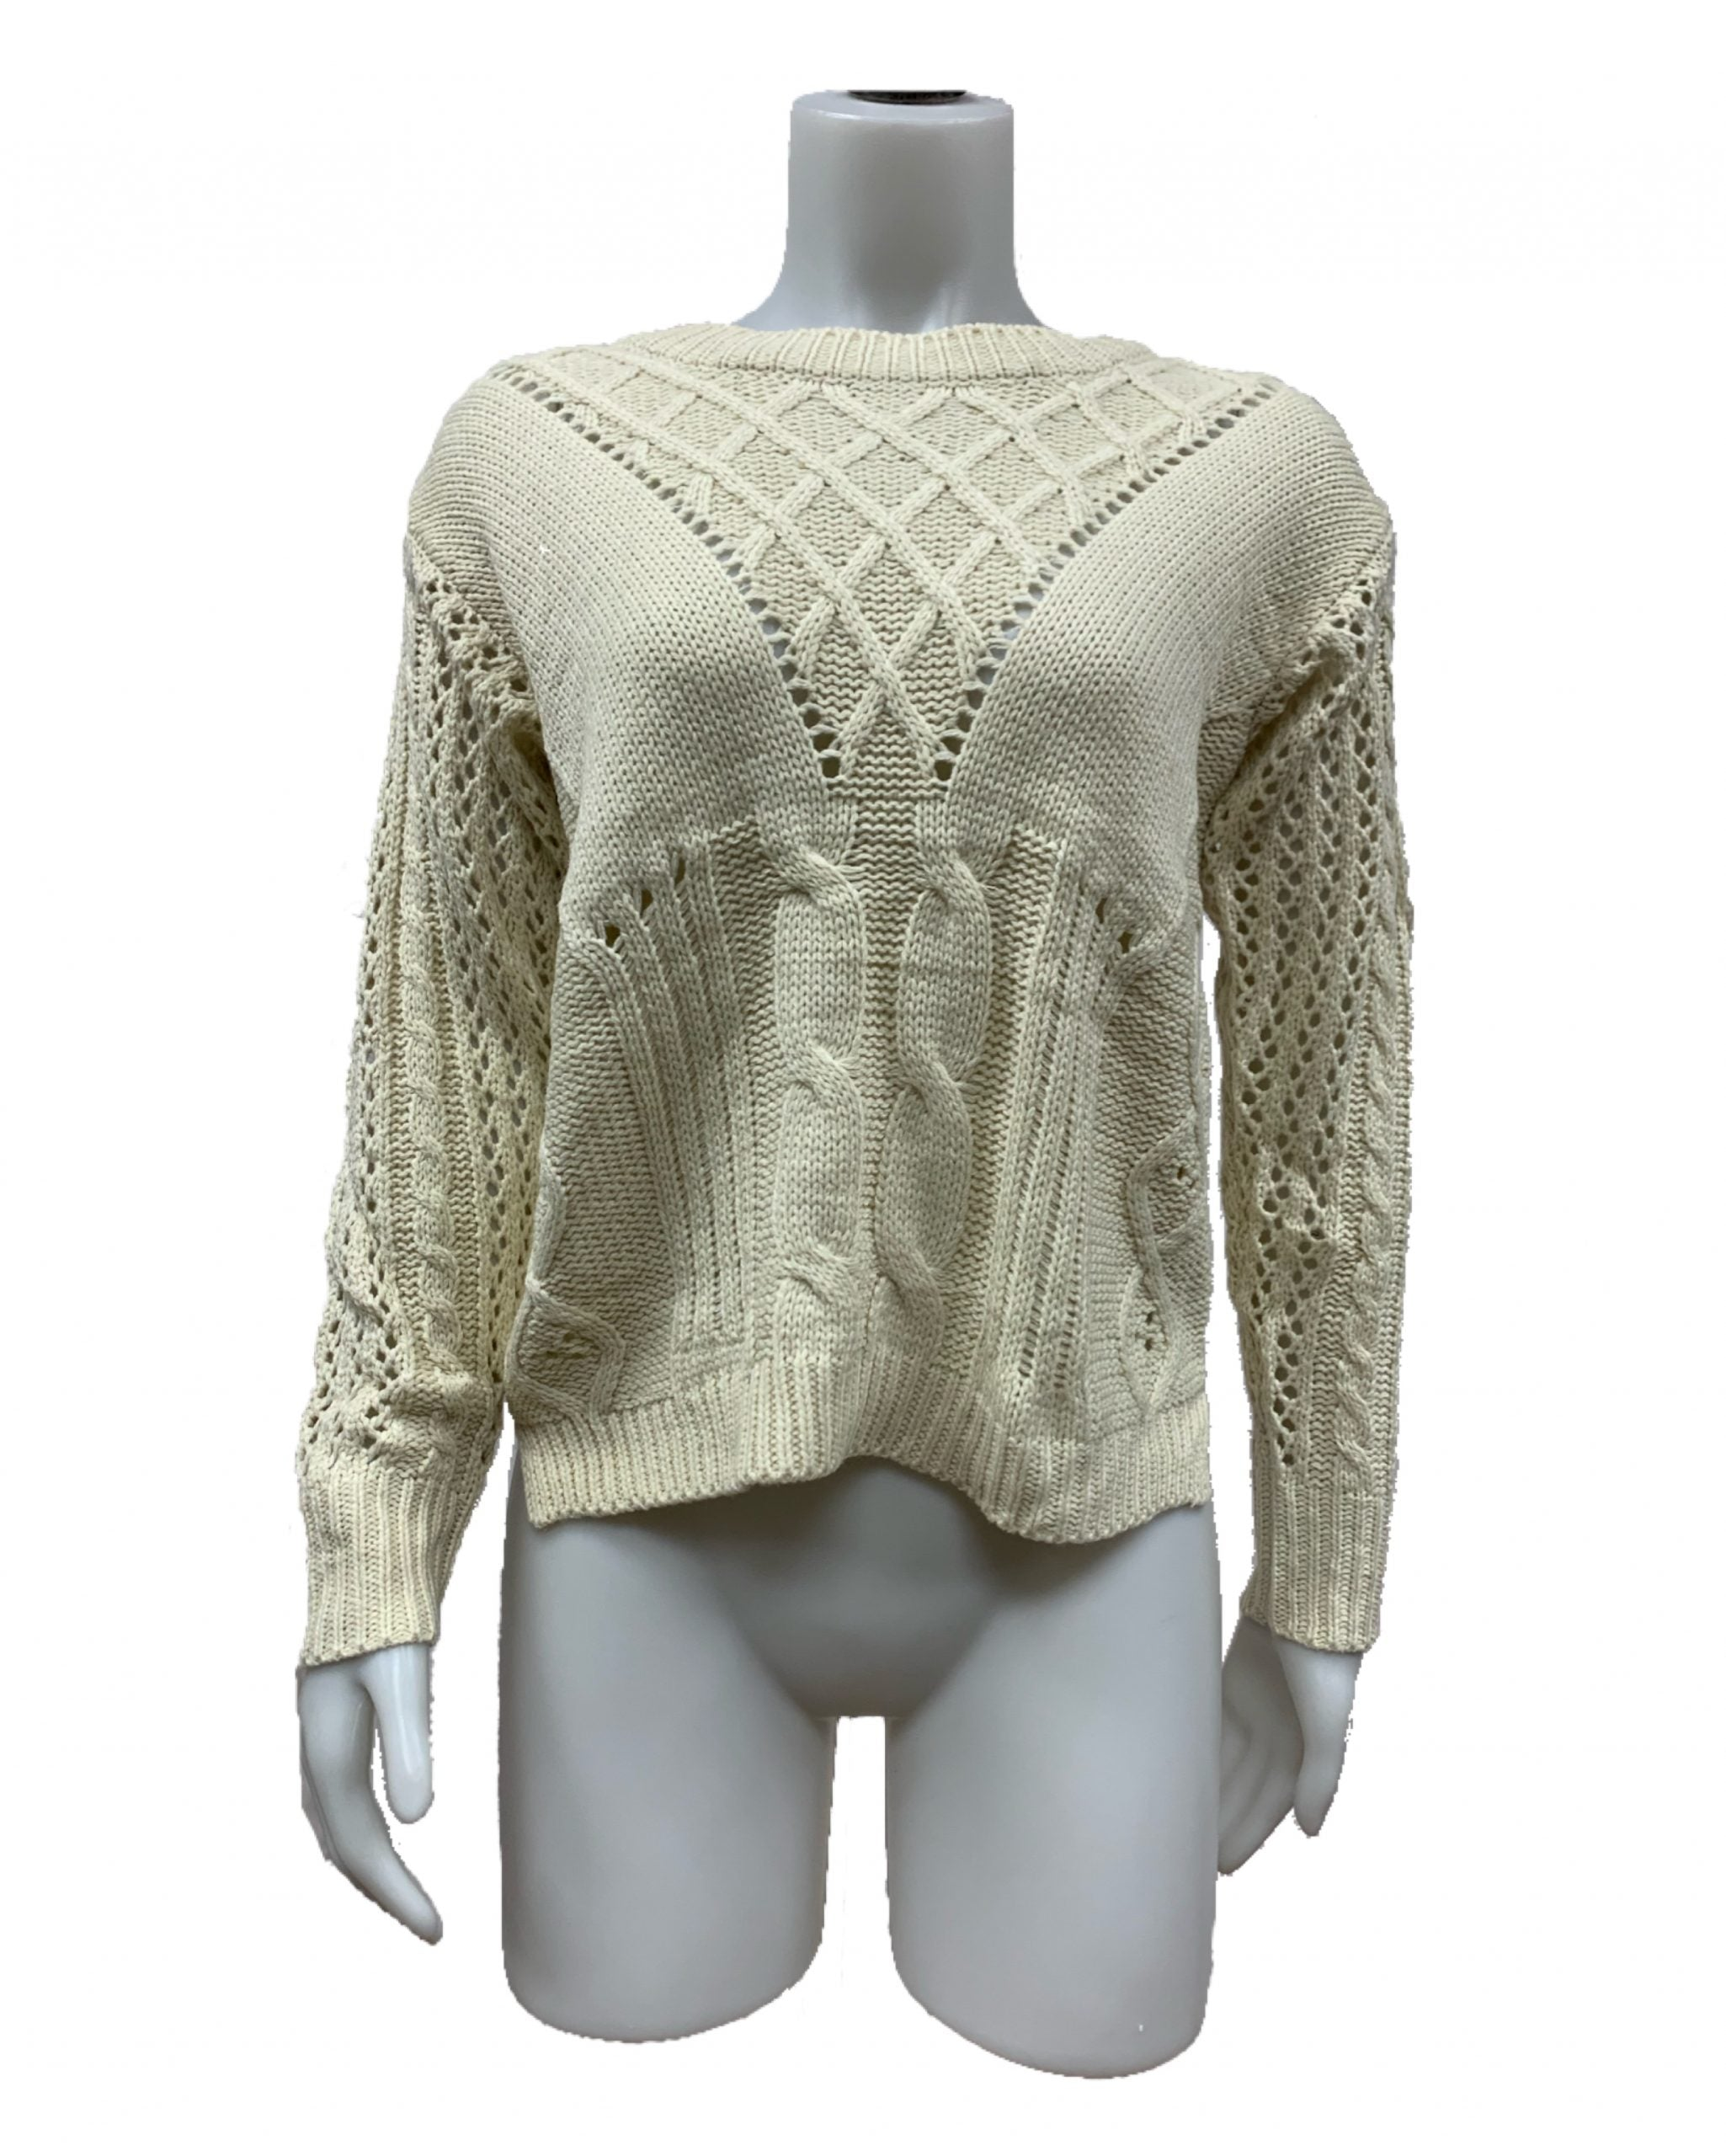 Intricate Cable Sweater